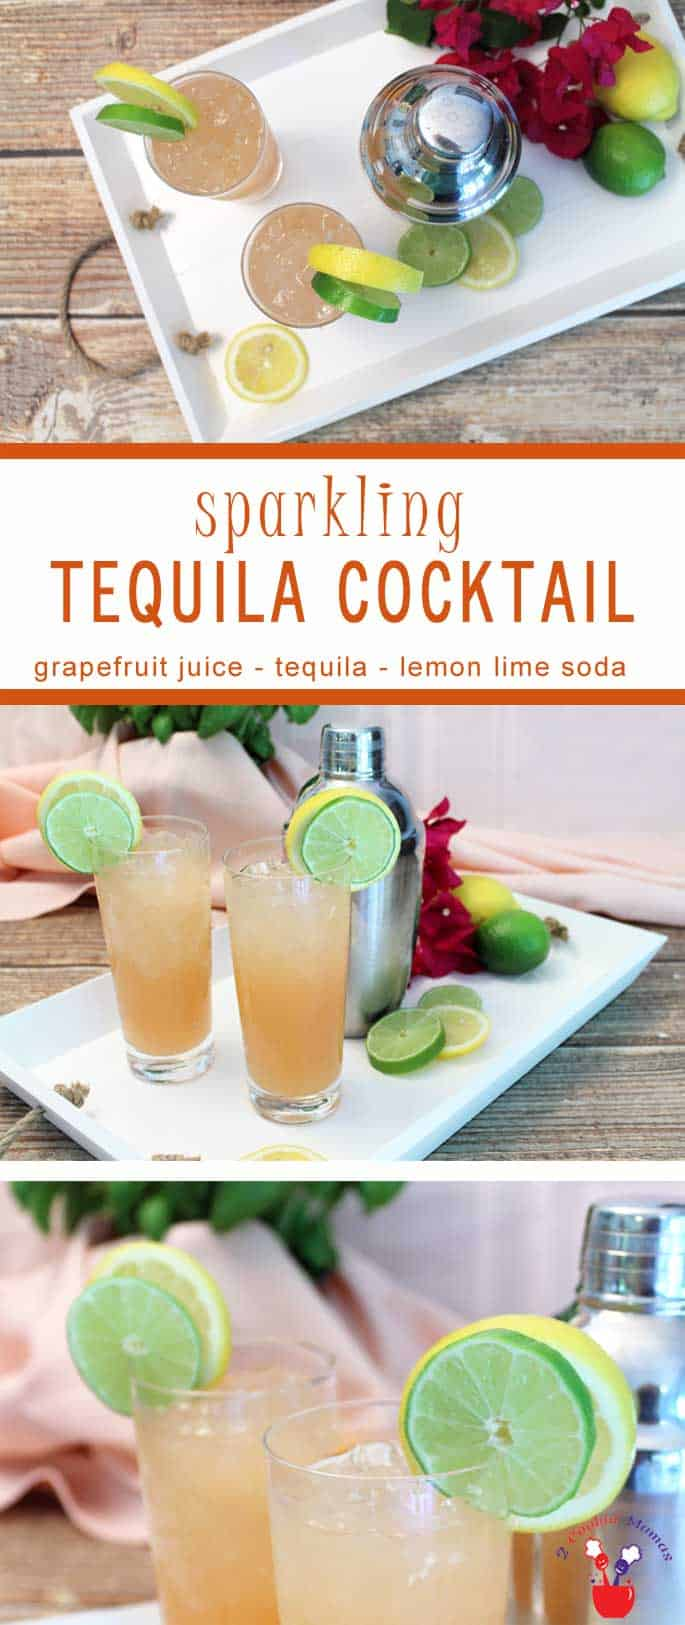 Sparkling Tequila Cooler | 2 Cookin Mamas Our Sparkling Tequila Cooler is a refreshingly tart cocktail based on the Paloma. Grapefruit juice, tequila & lemon lime soda make this a tropical delight.